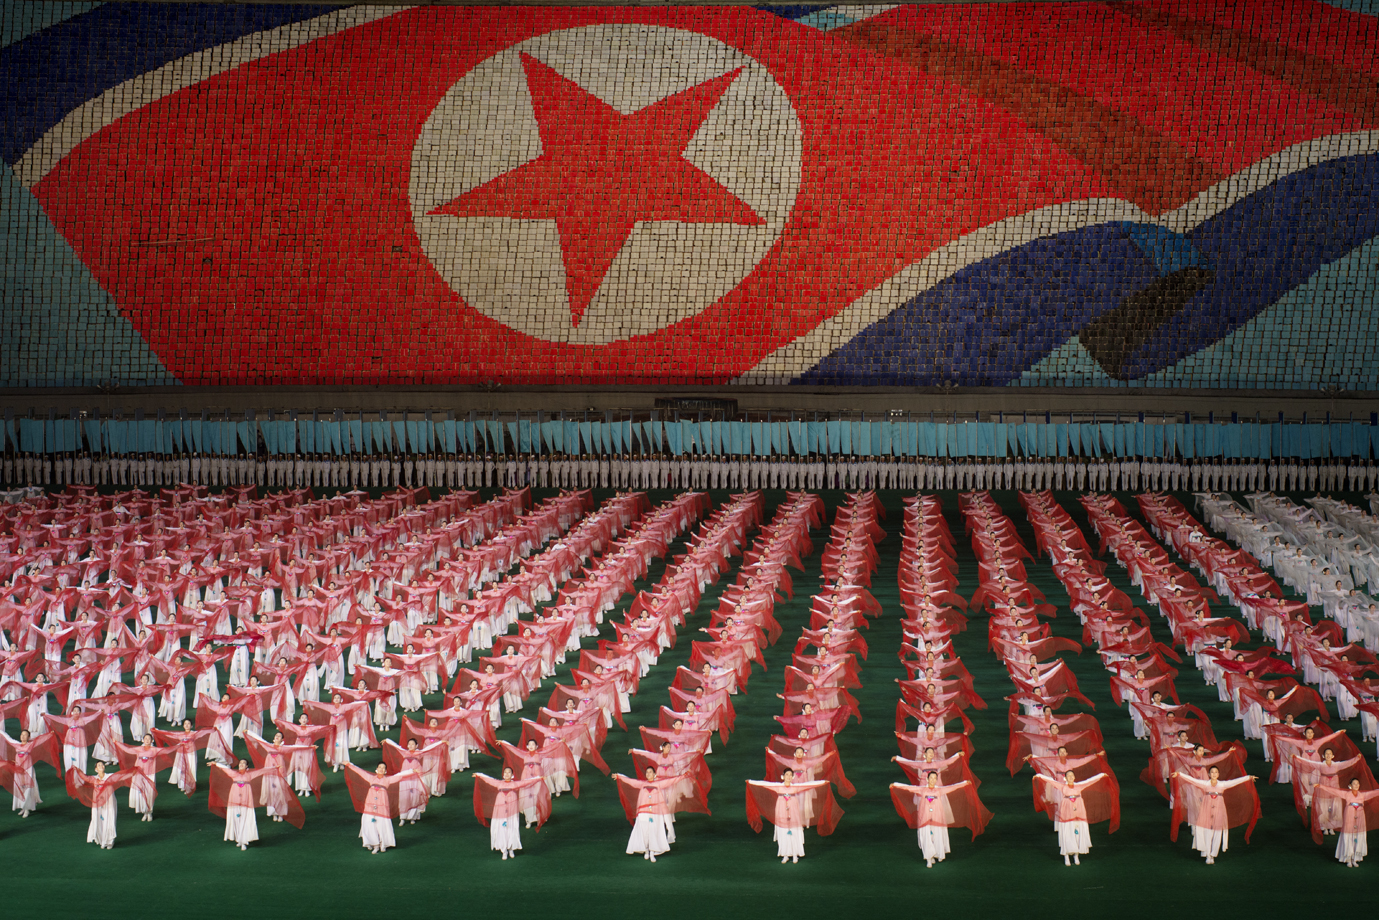 Mass games, Pyongyang/ North Korea